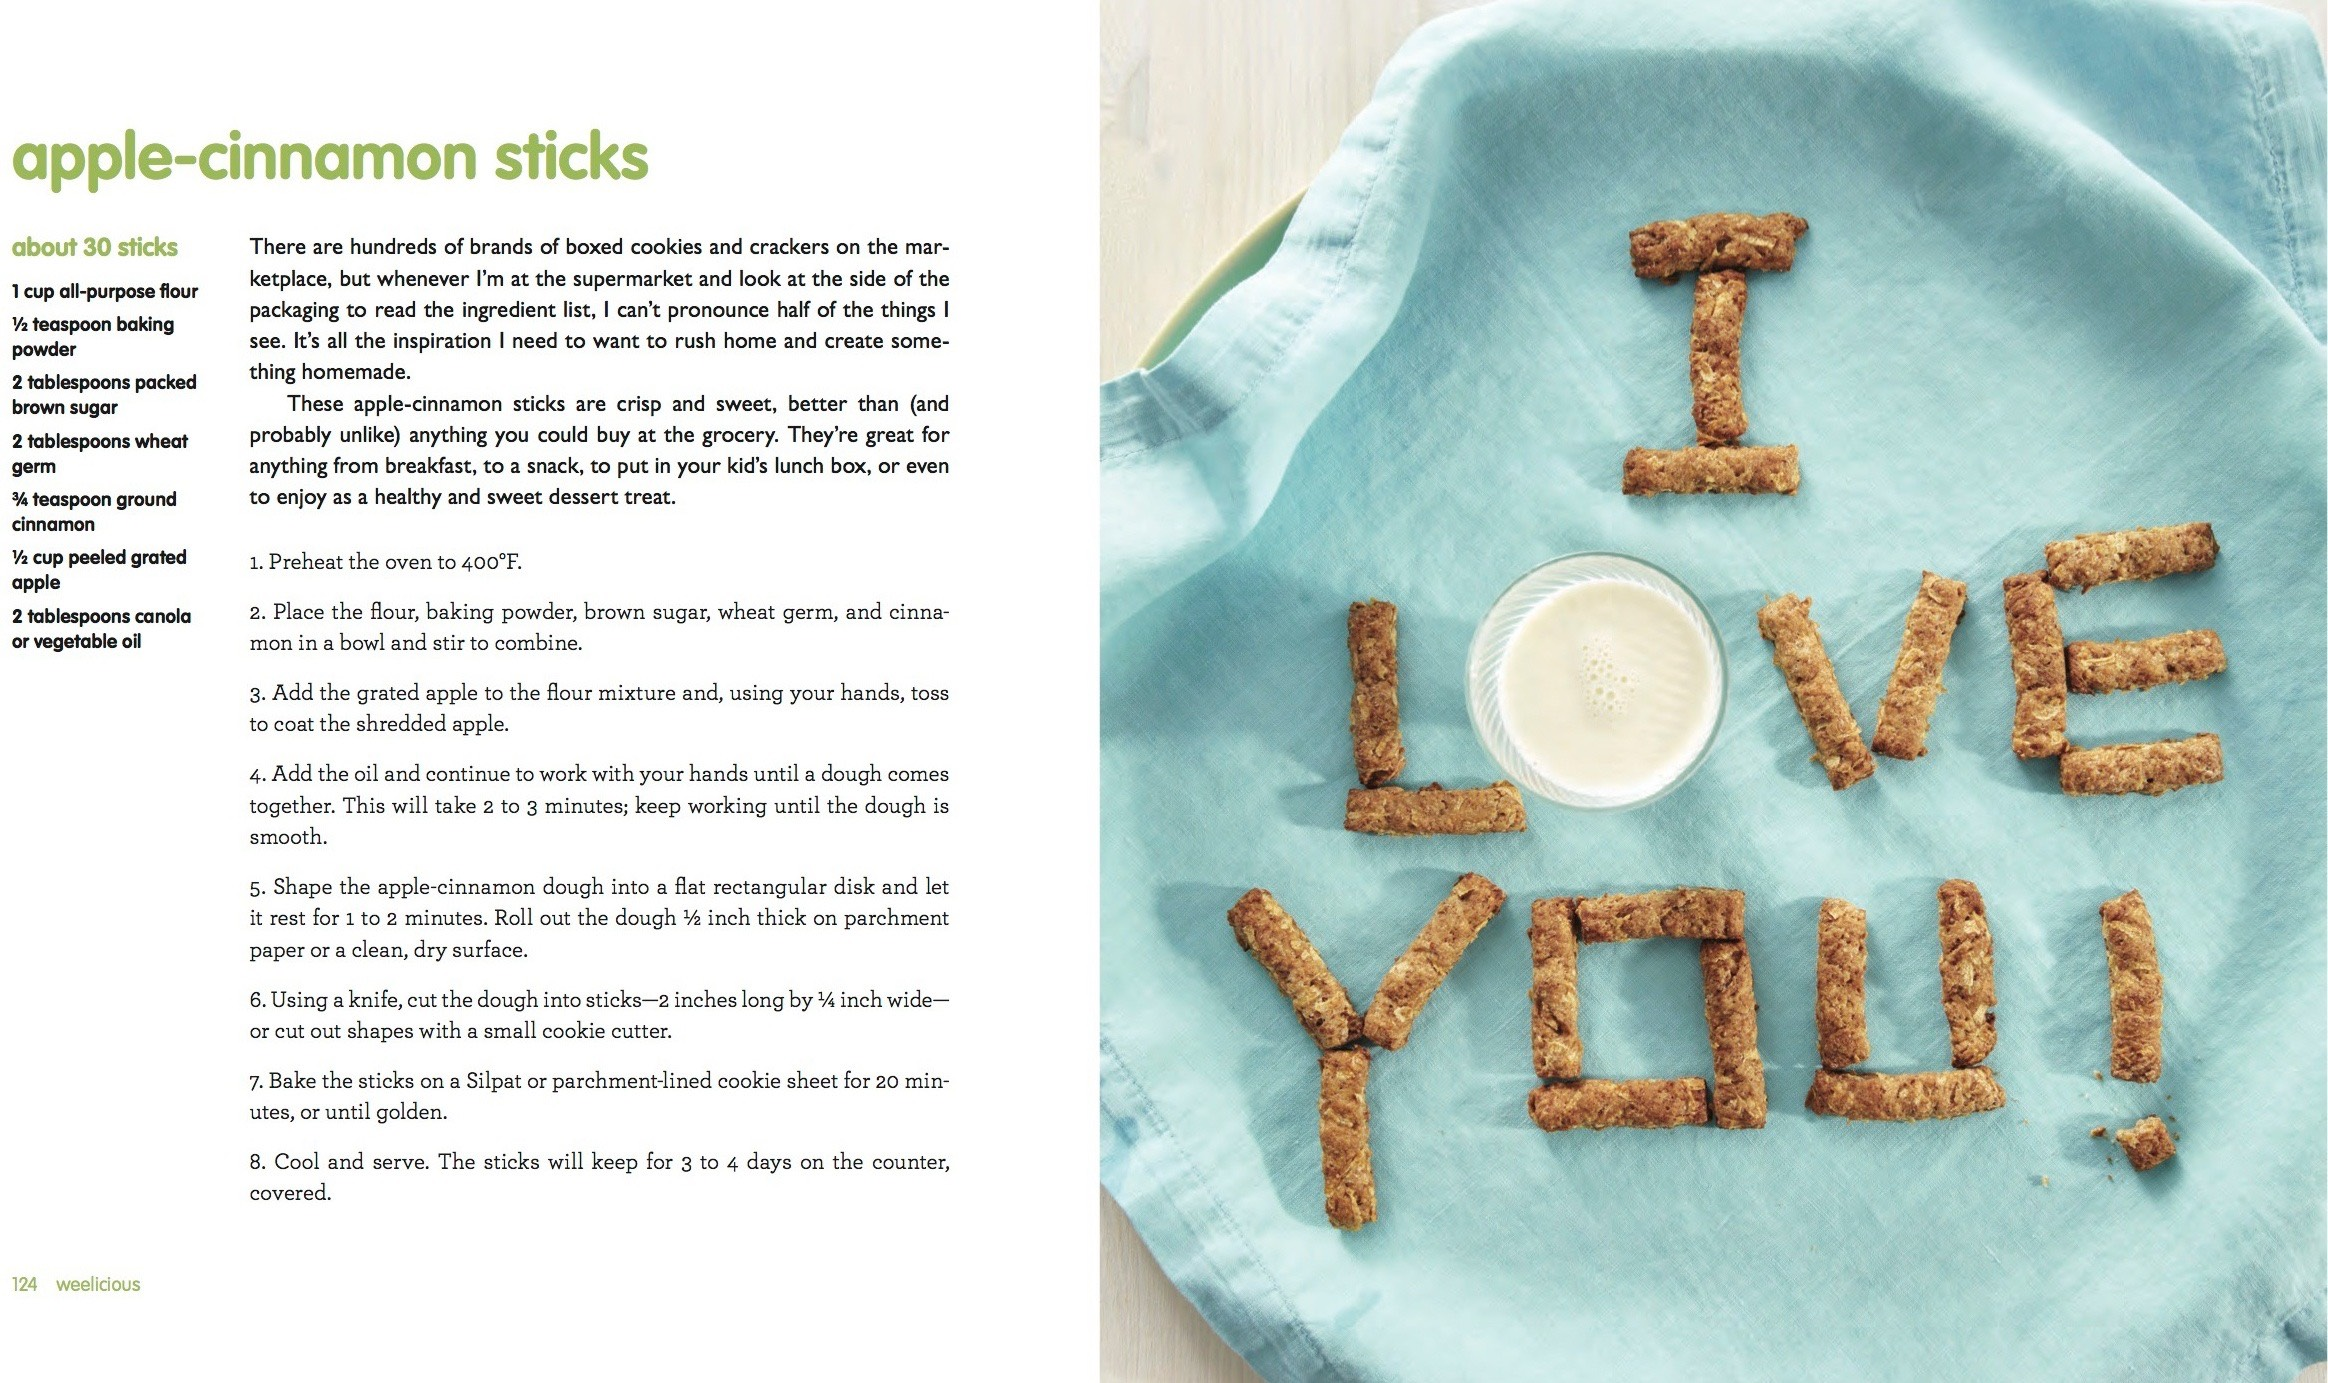 Apple Cinnamon Sticks from Weelicious